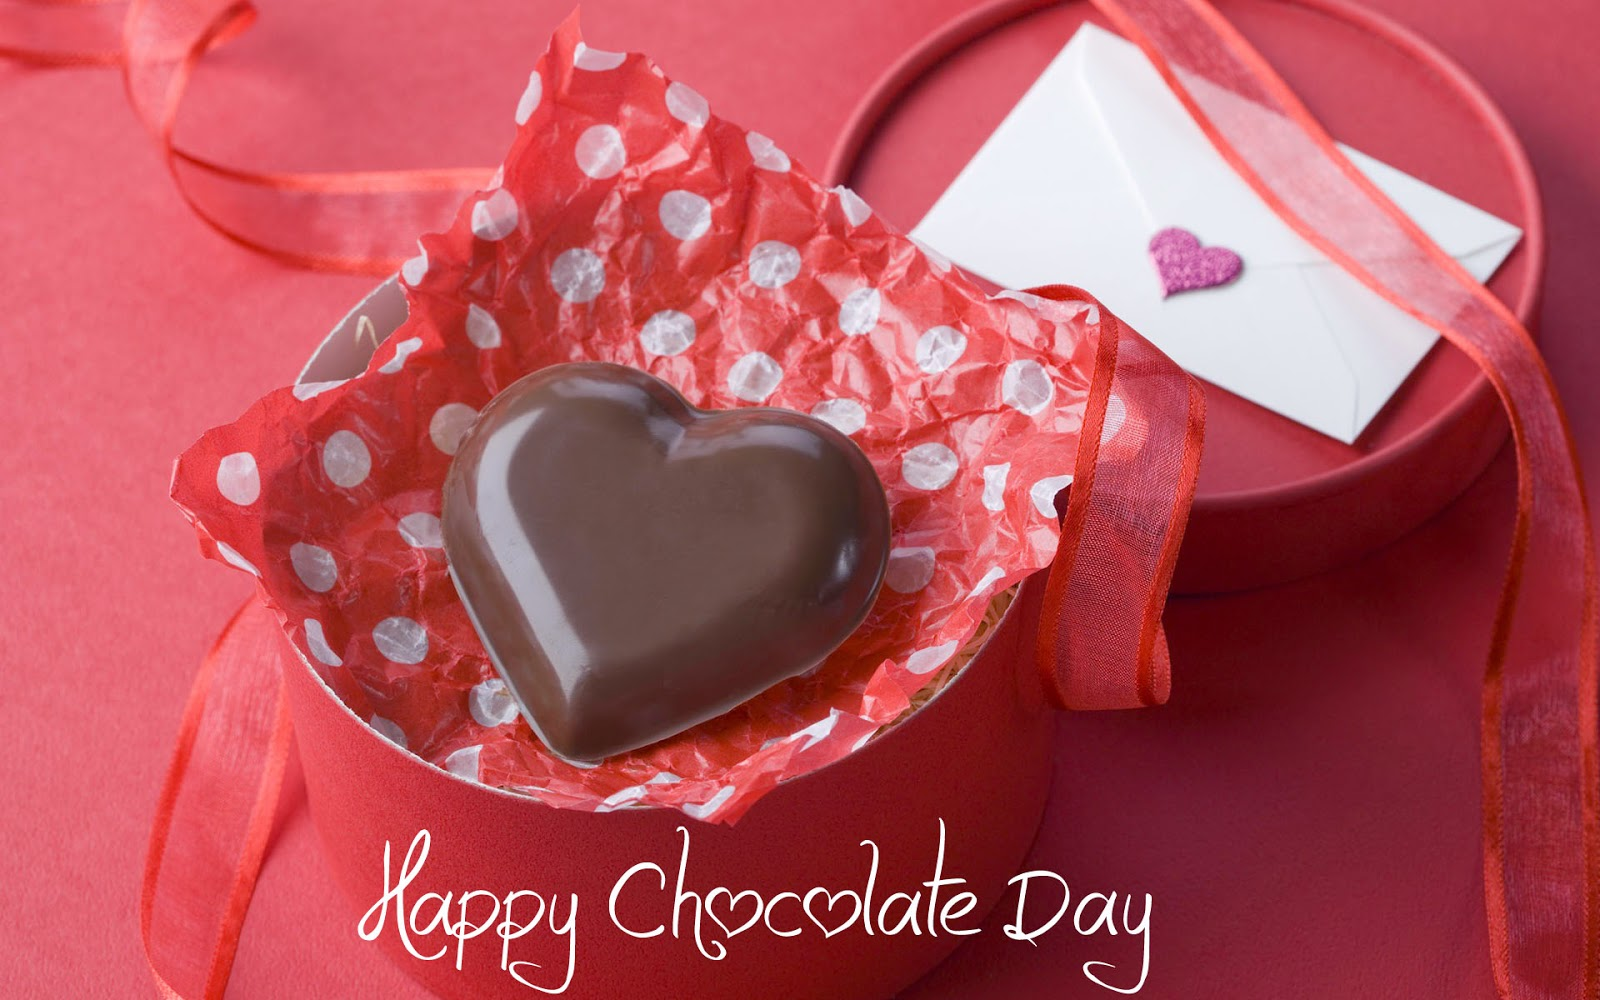 happpy chocolate day